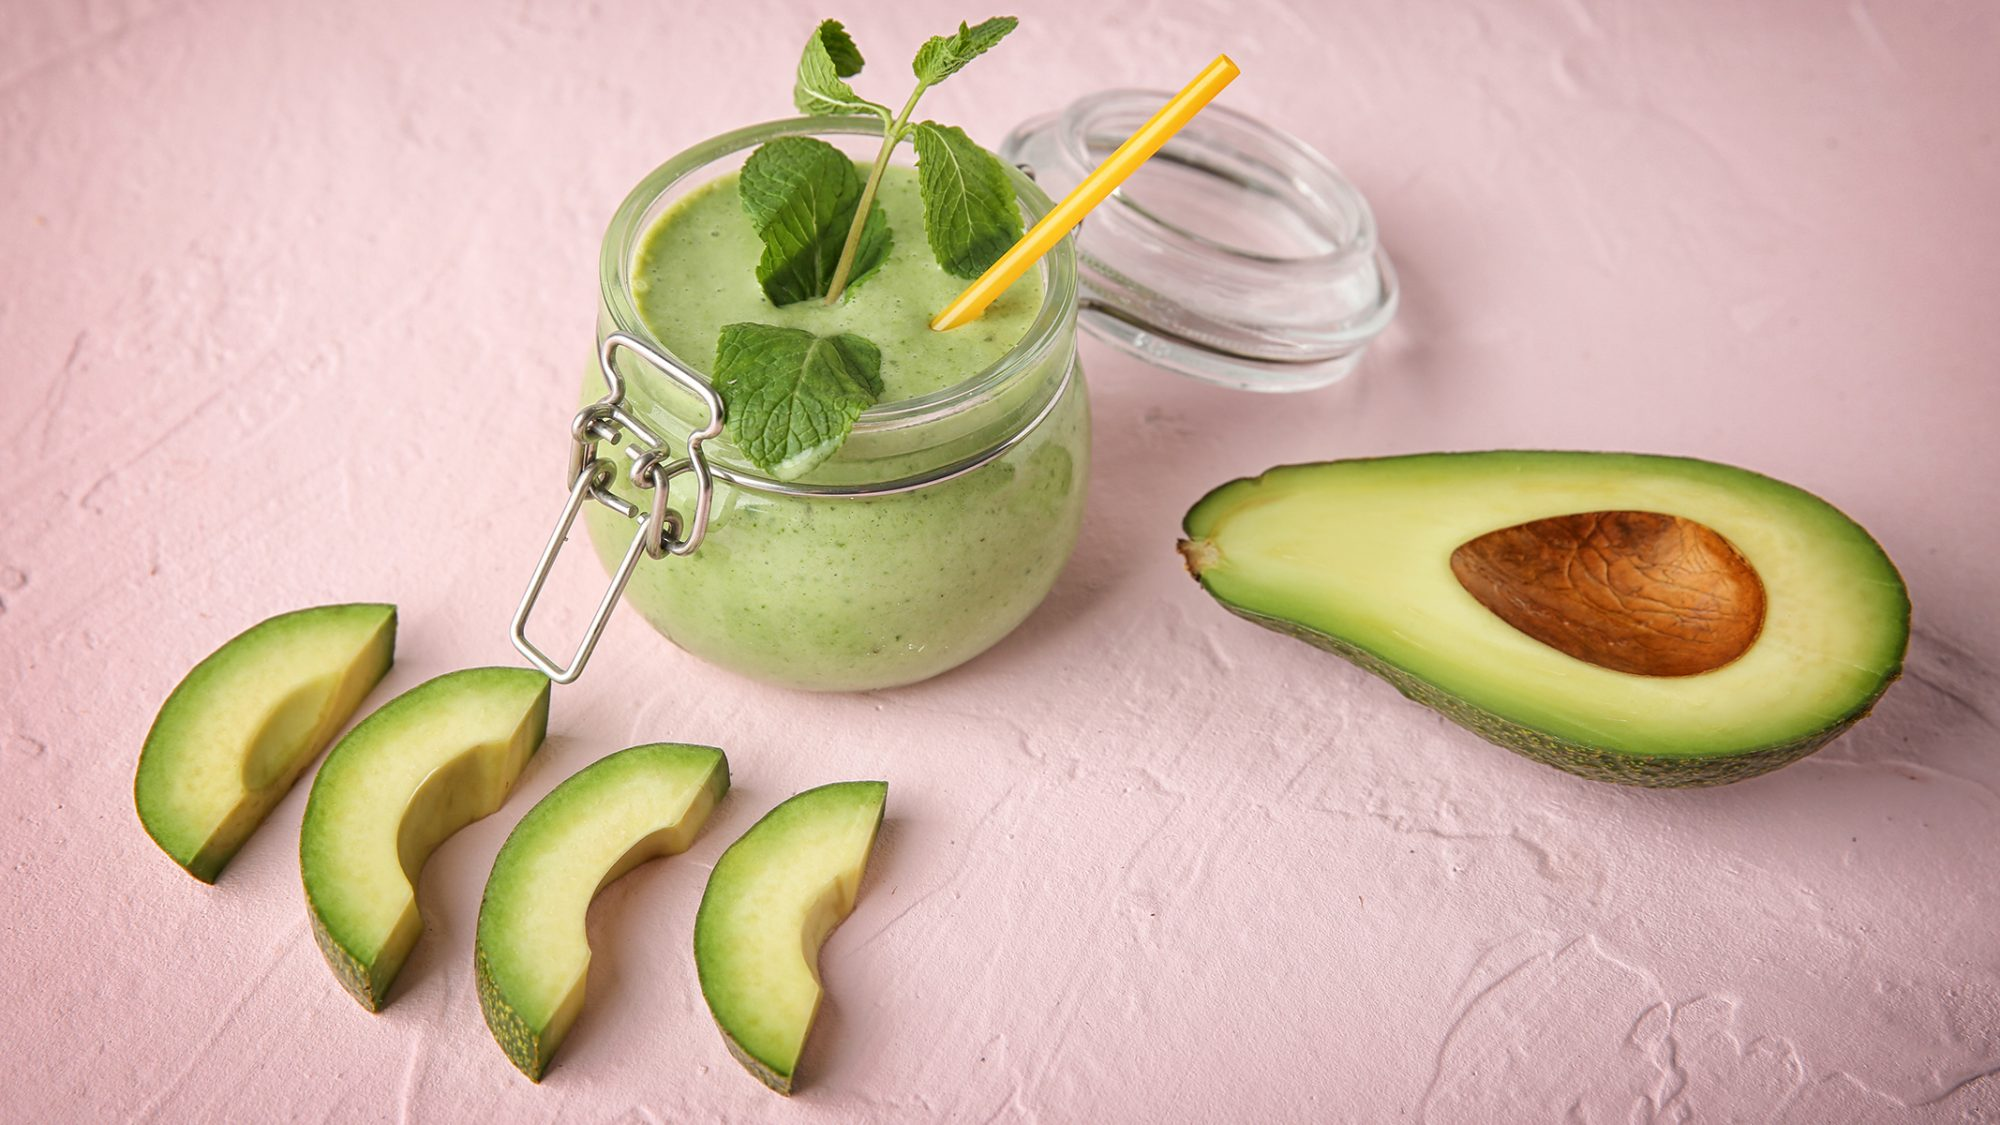 can you freeze avocado: Glass jar with tasty smoothie and sliced fresh avocado on table